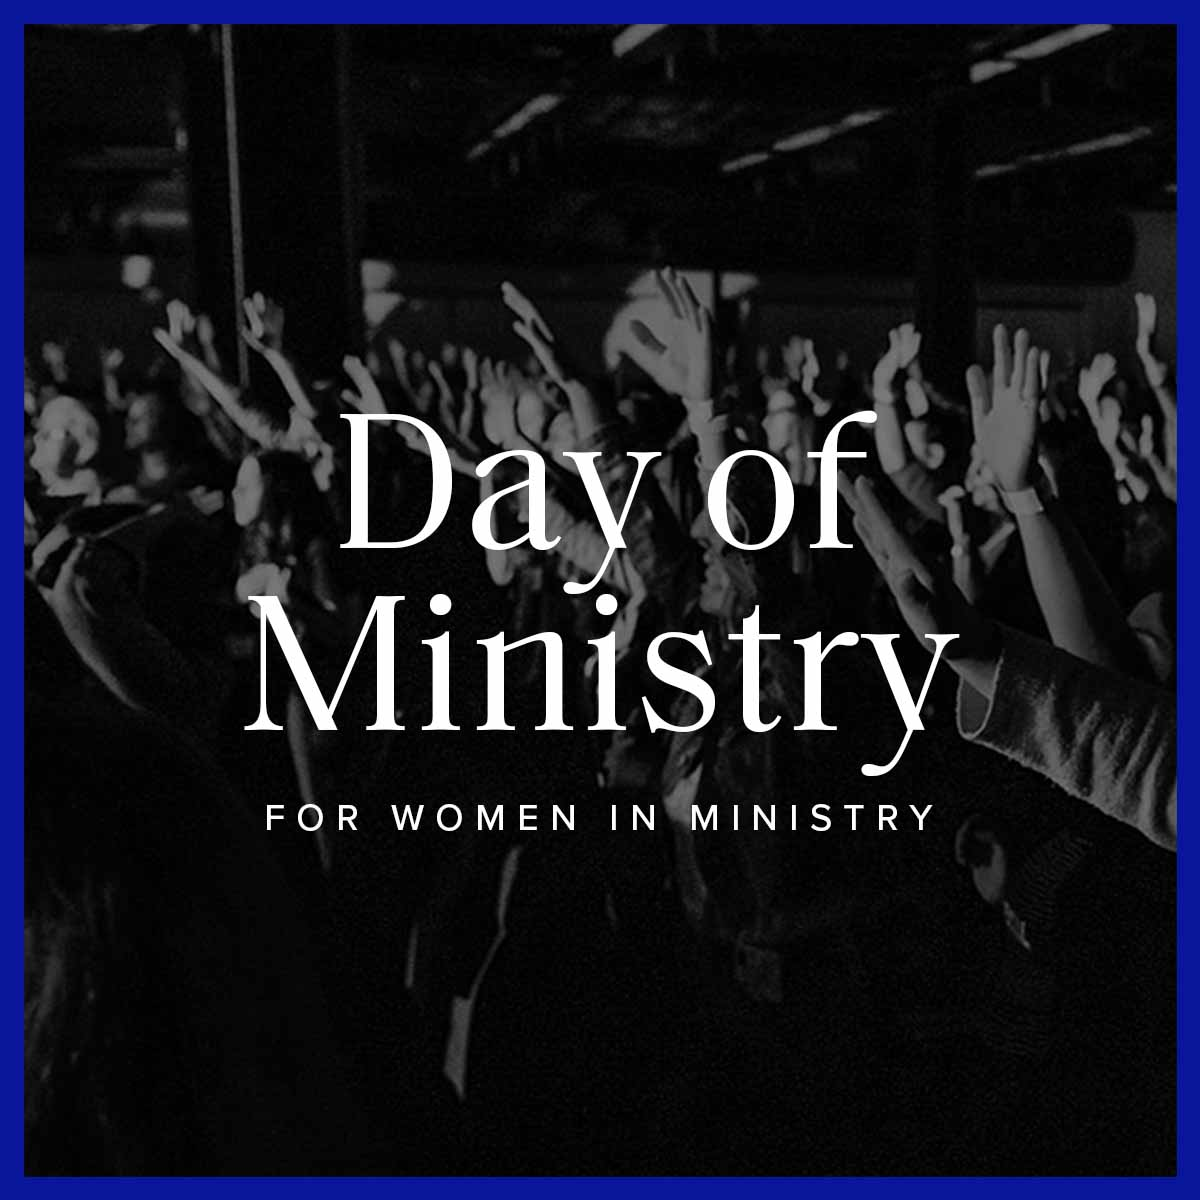 Day of Ministry for Women in Ministry